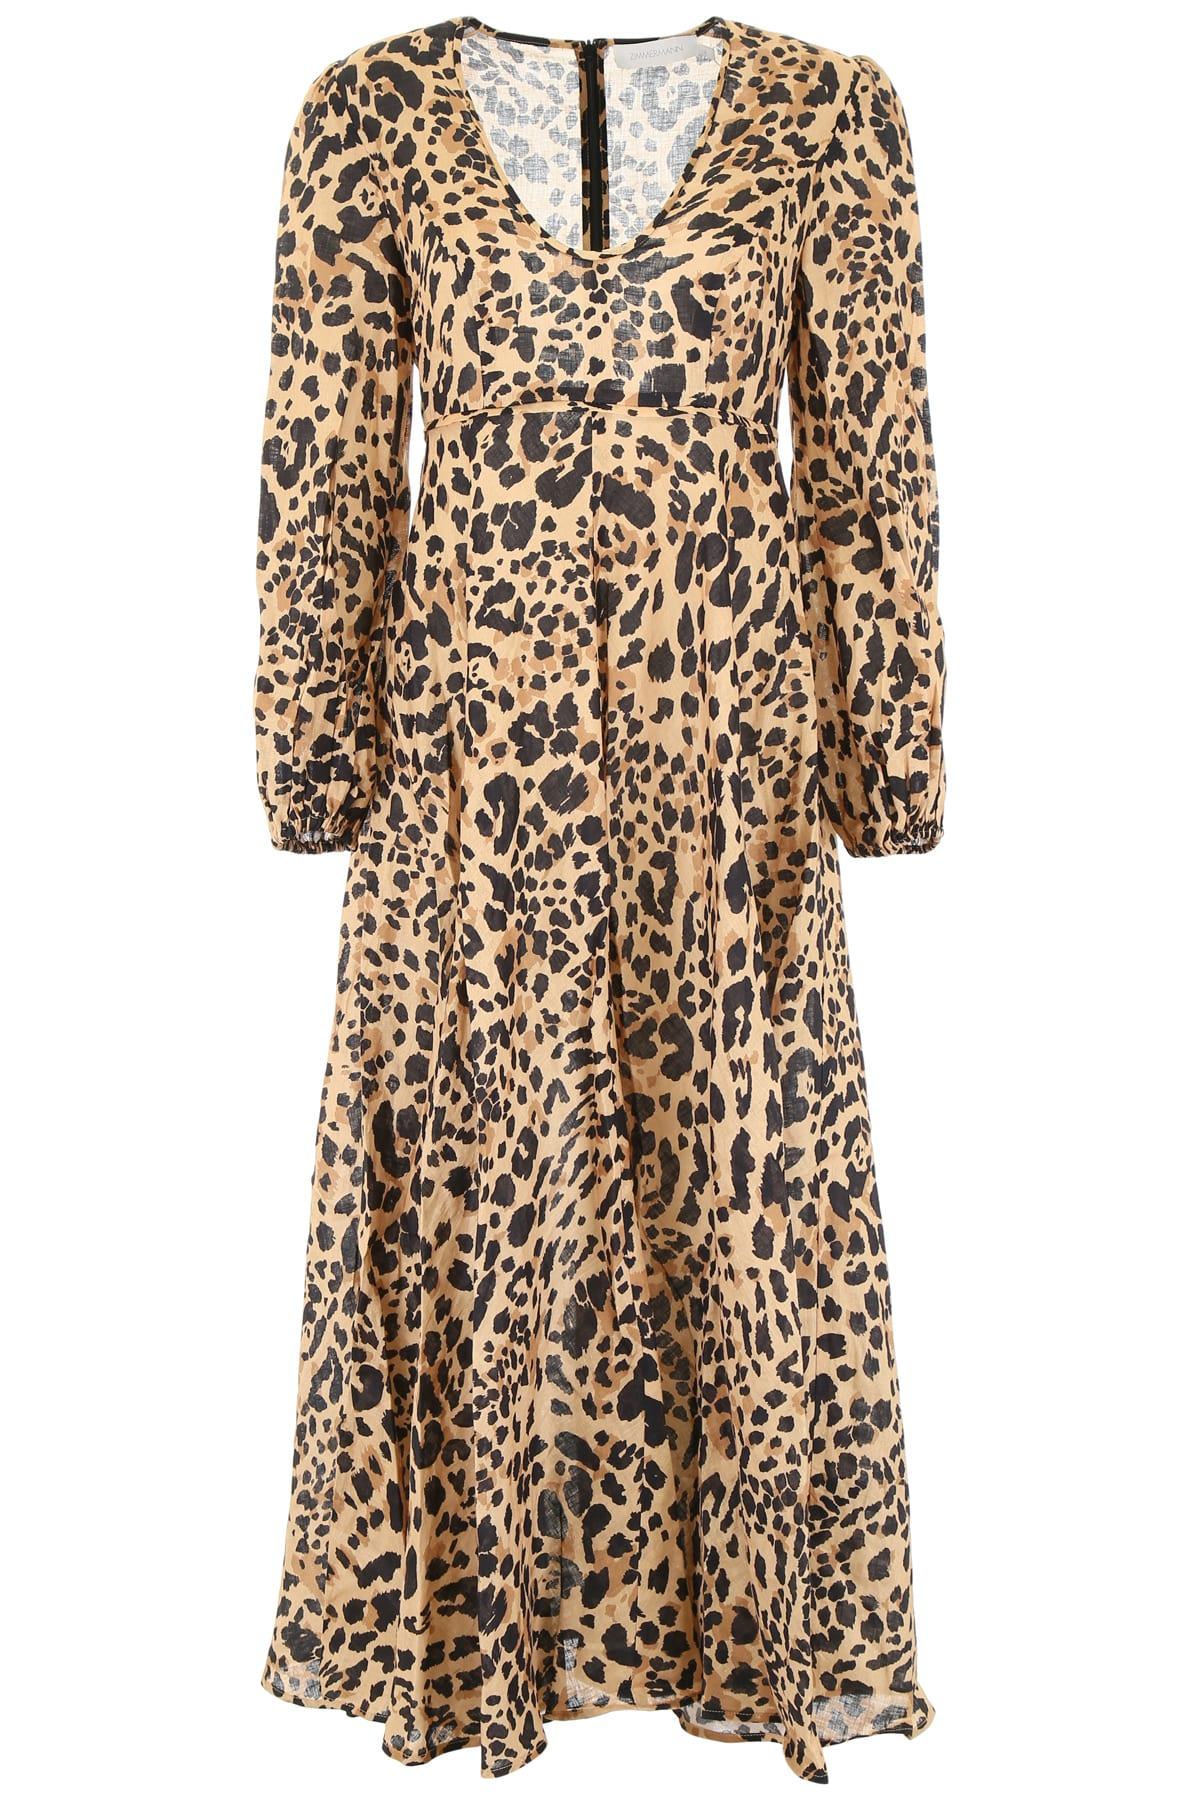 Buy Zimmermann Leopard-printed Dress online, shop Zimmermann with free shipping